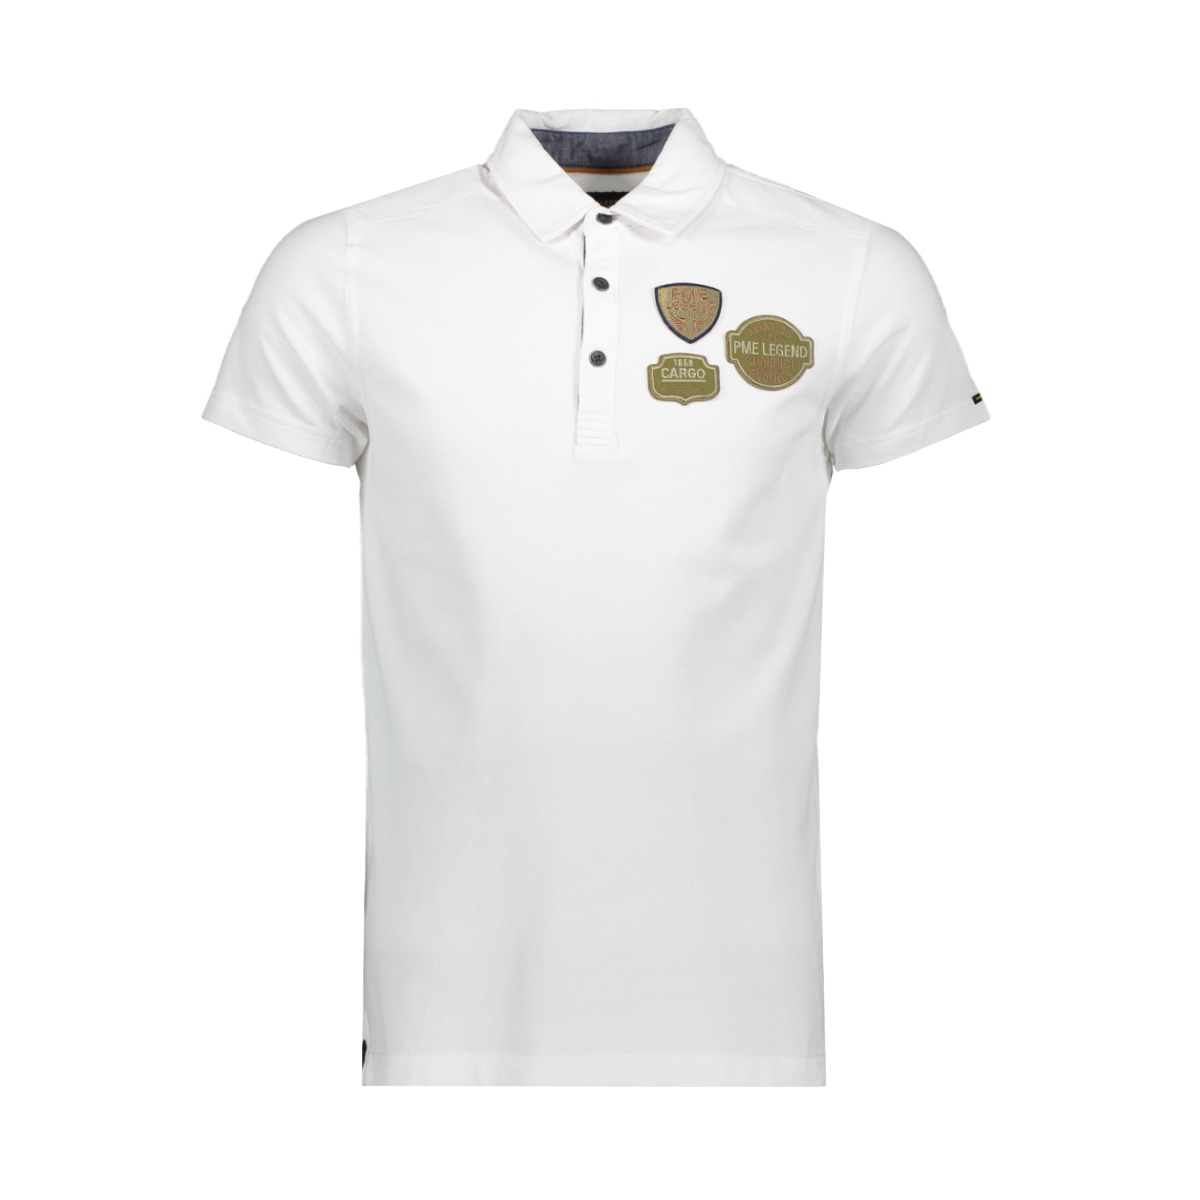 rugged pique short sleeve polo ppss193859 pme legend polo 7003